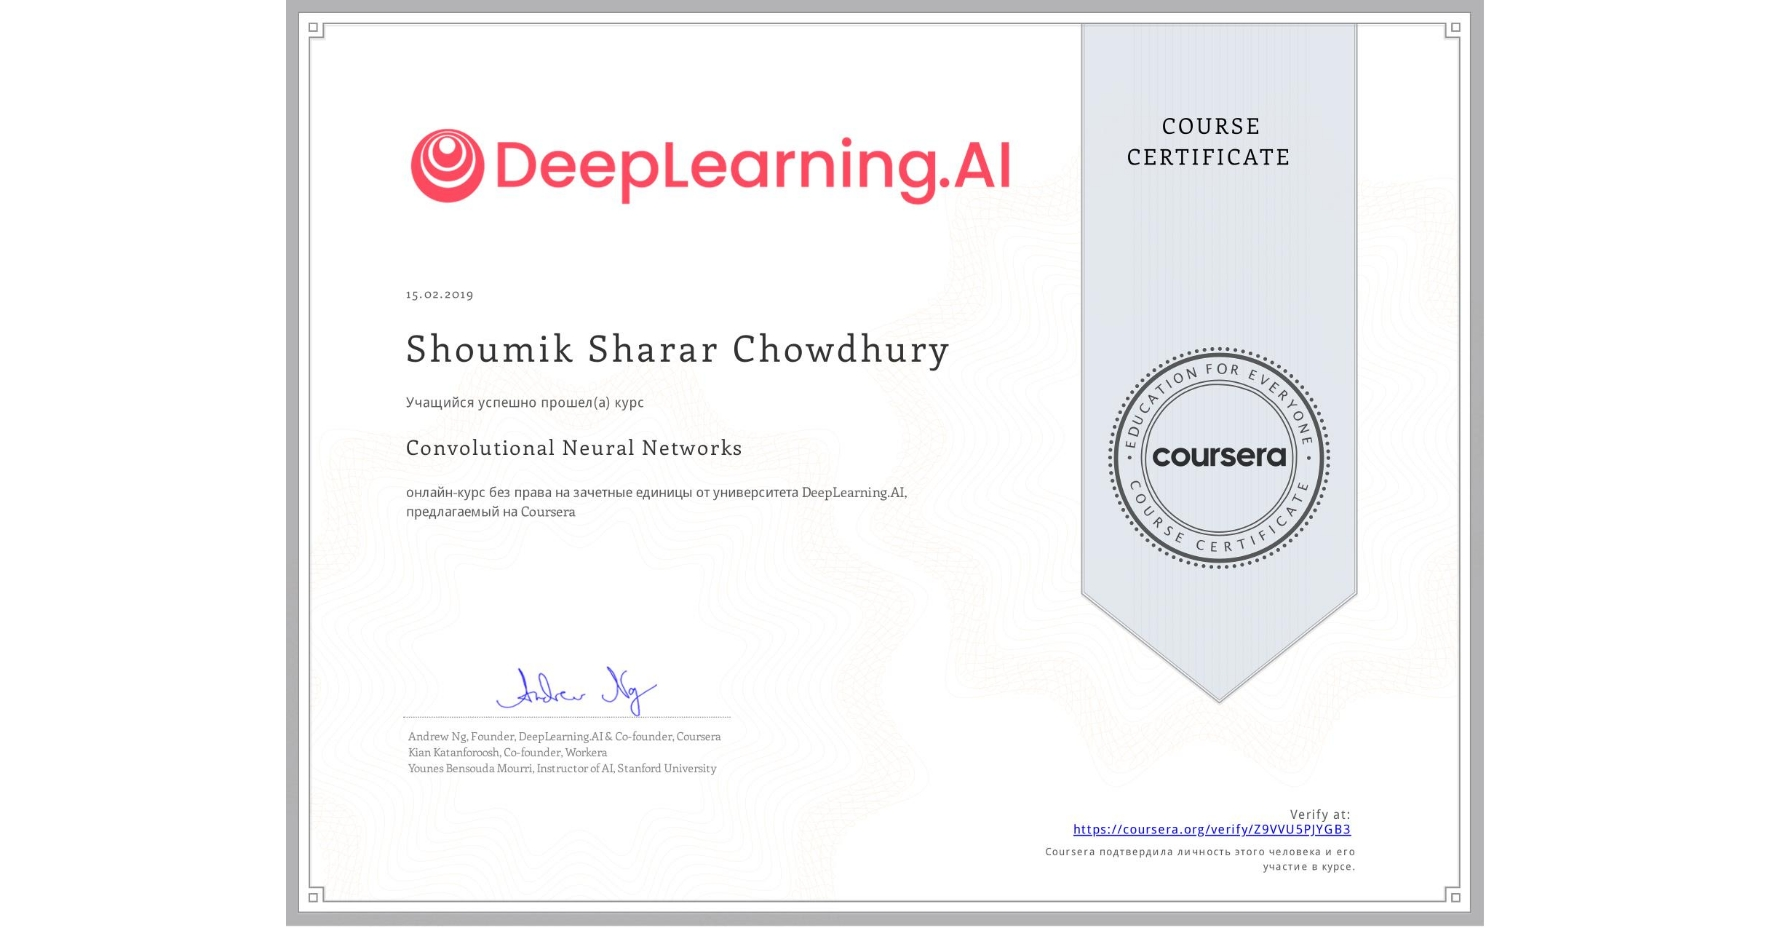 View certificate for Shoumik Sharar Chowdhury, Convolutional Neural Networks, an online non-credit course authorized by DeepLearning.AI and offered through Coursera